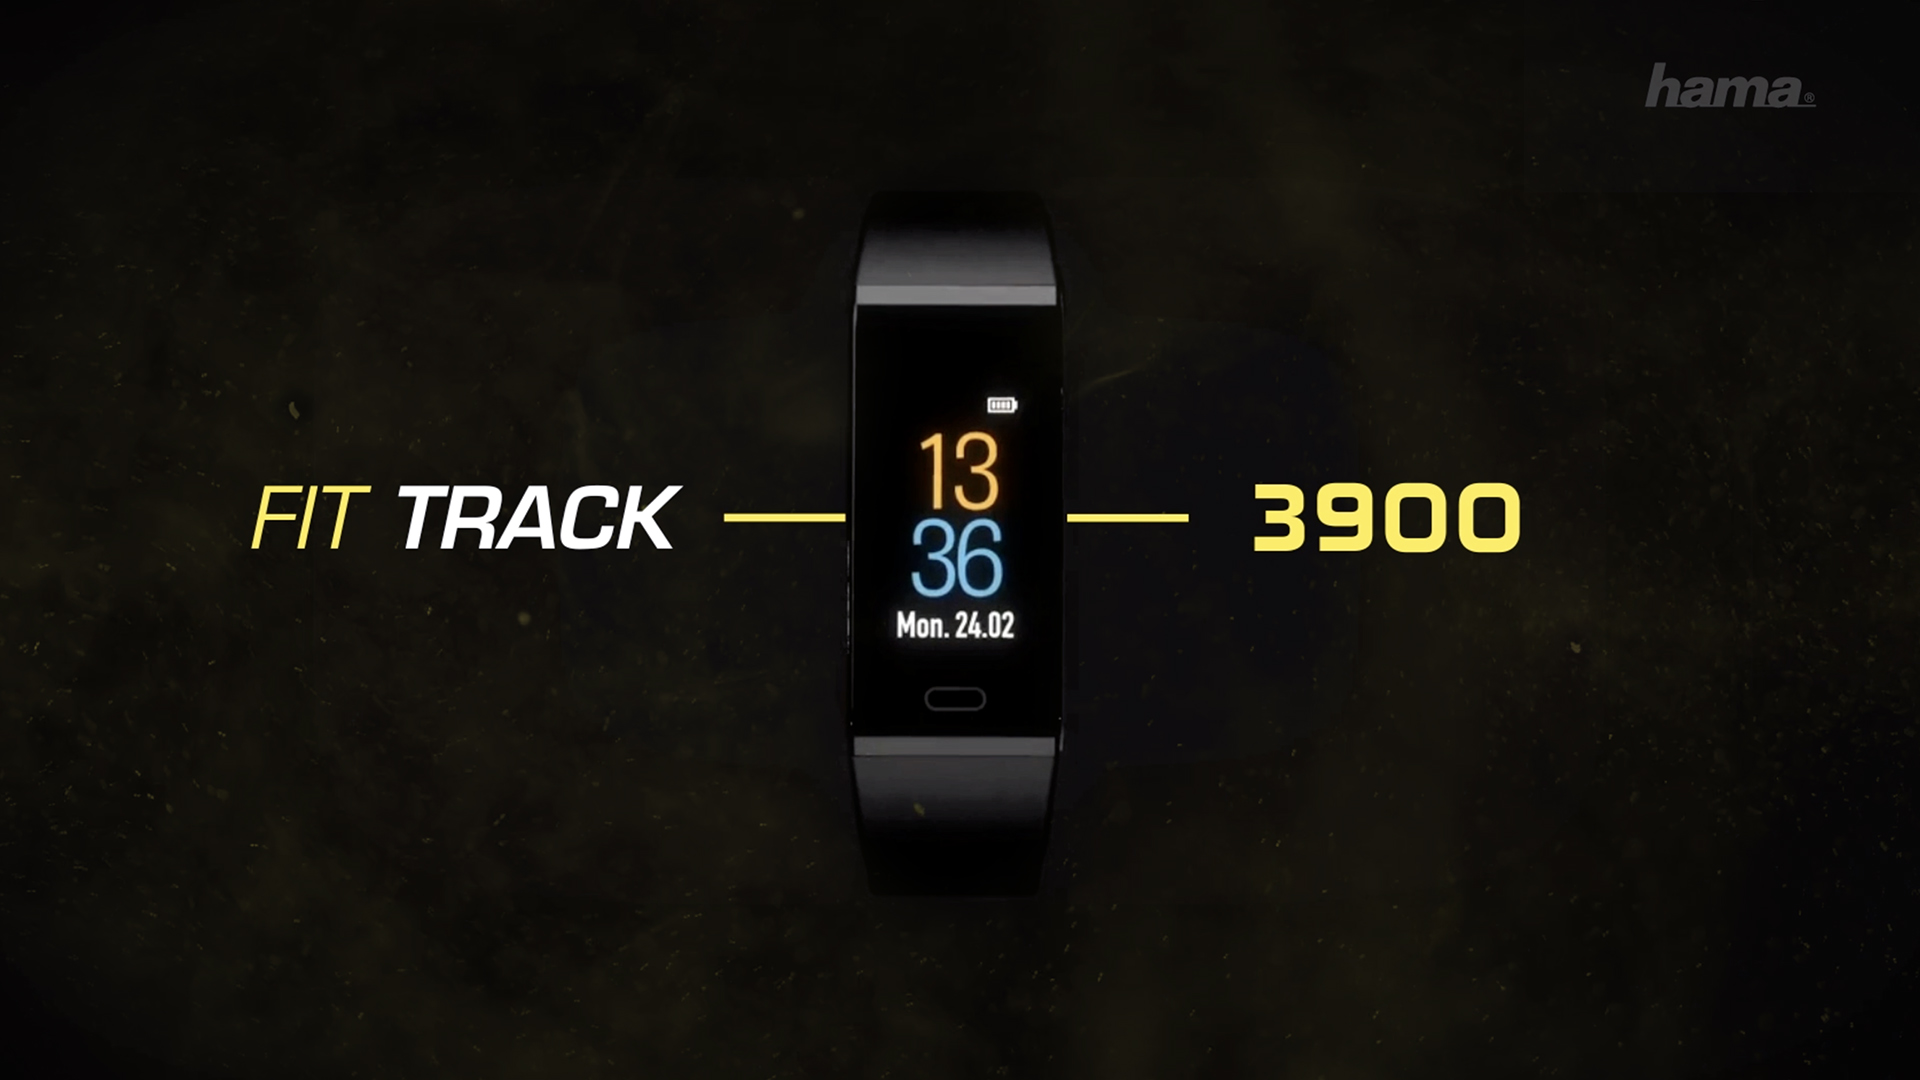 "Hama ""Fit Track 3900"" Fitness Tracker"